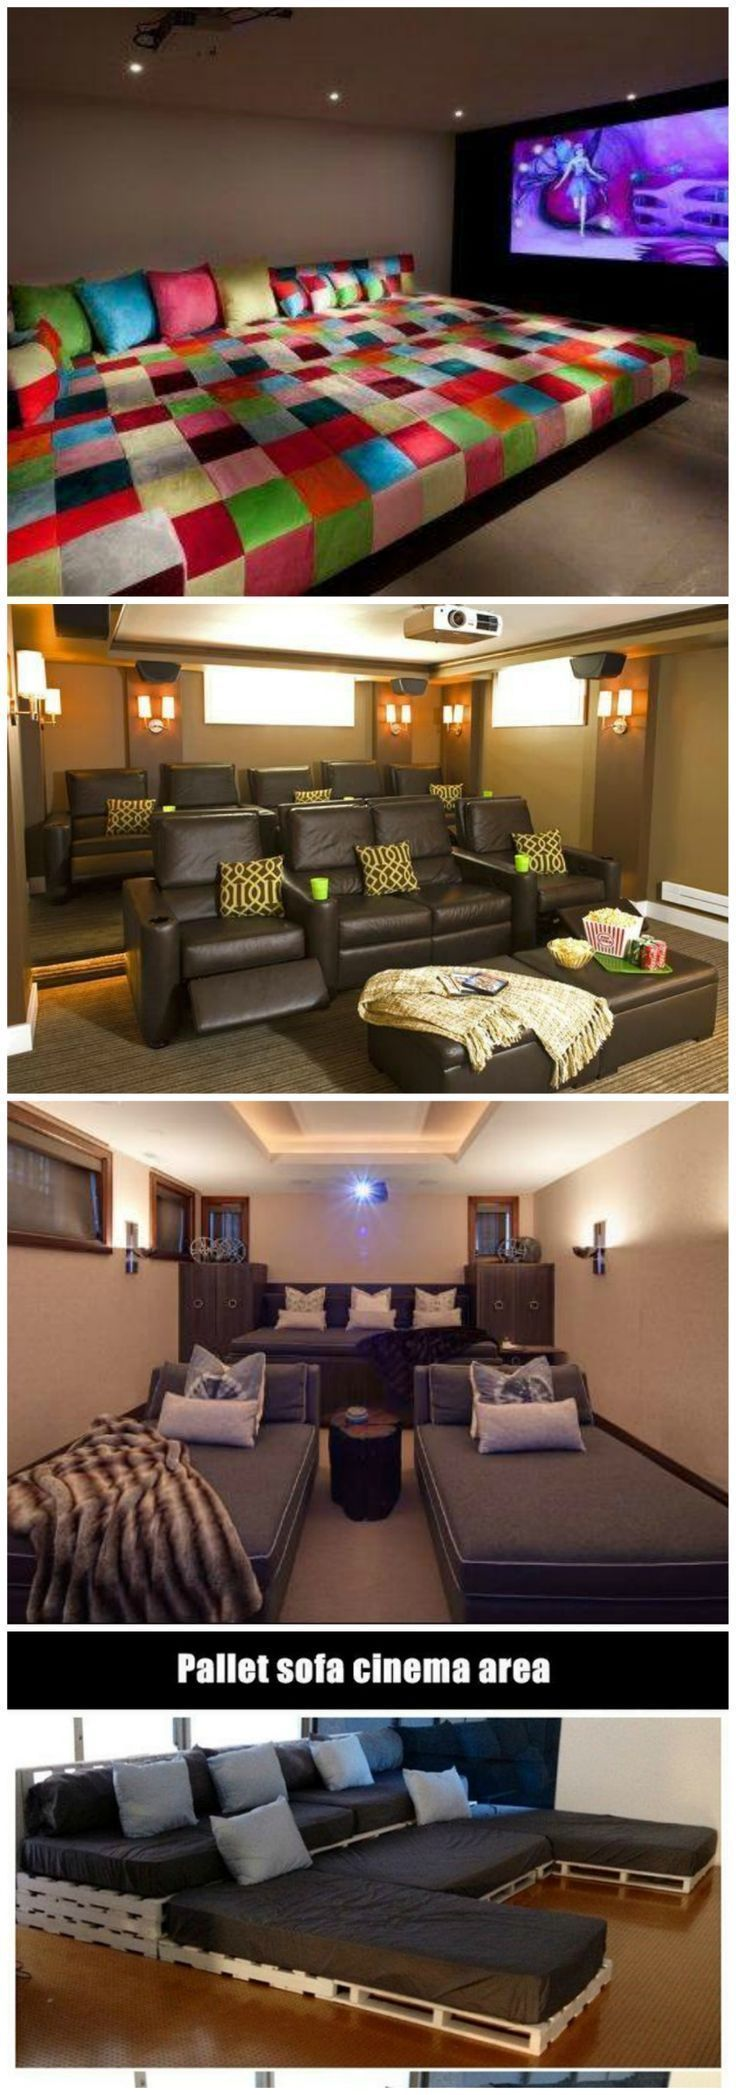 More ideas below: #HomeTheater #BasementIdeas DIY Home theater Decorations Ideas Basement Home theater Rooms Red Home theater Seating Small Home theater Speakers Luxury Home theater Couch Design Cozy Home theater Projector Setup Modern Home theater Lighting System #hometheaterprojector